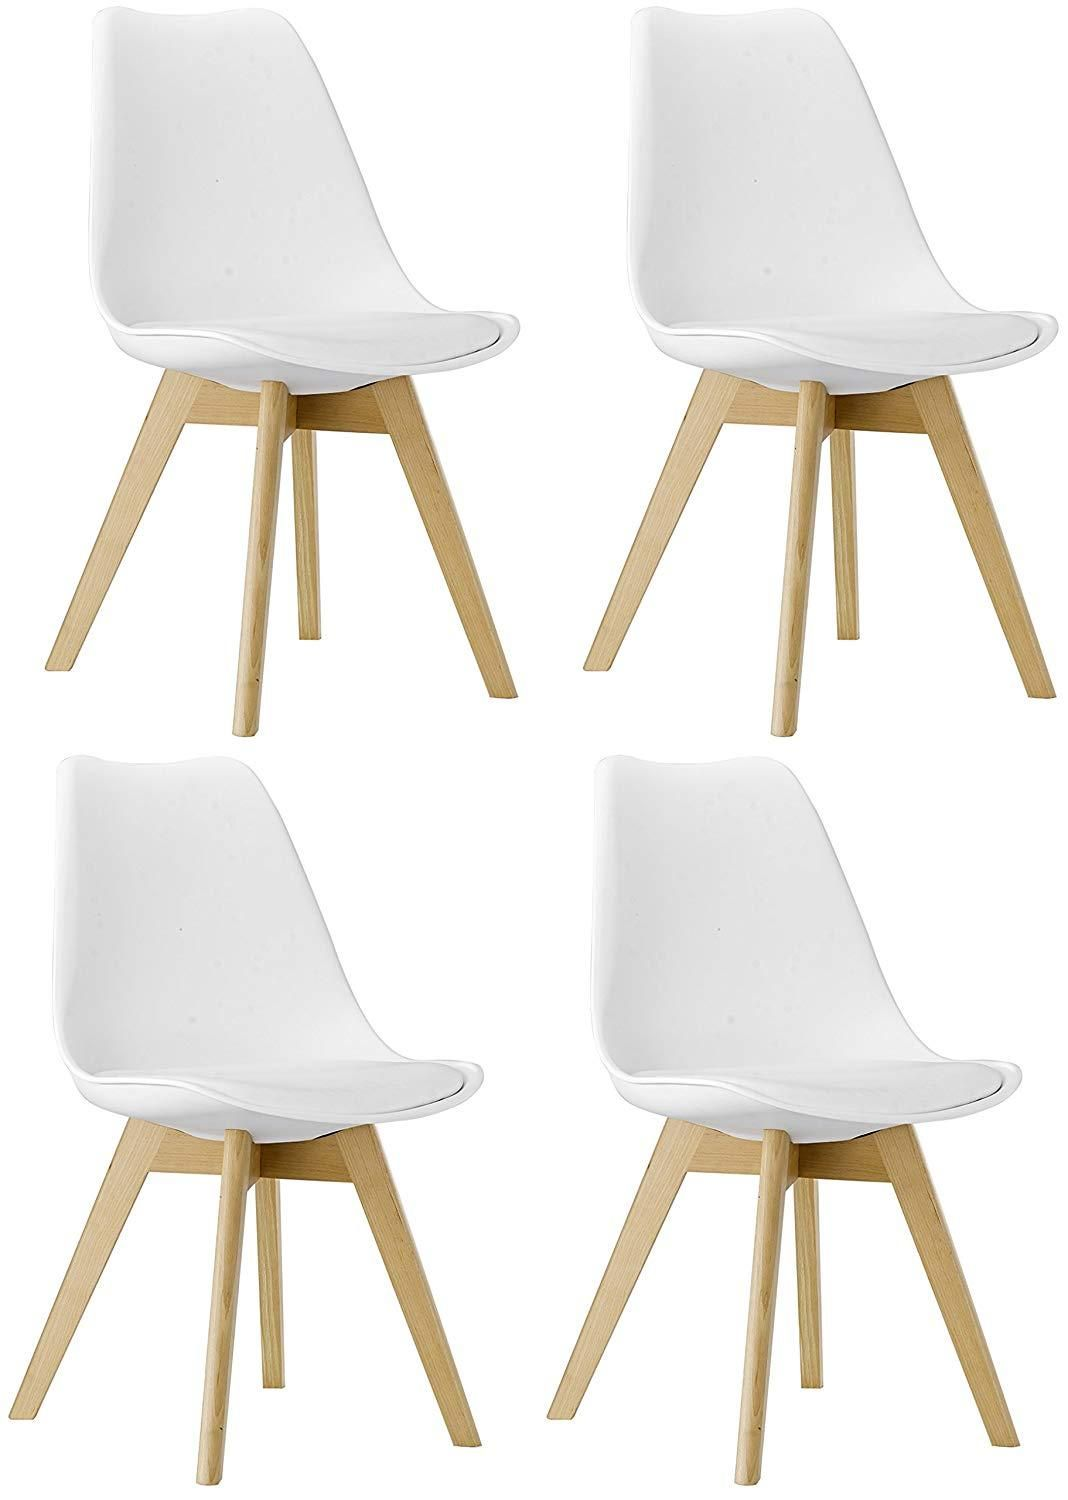 Cool M5079 Naba Modern Midcentury Wood Leg Soft Padded Upholstery Pabps2019 Chair Design Images Pabps2019Com